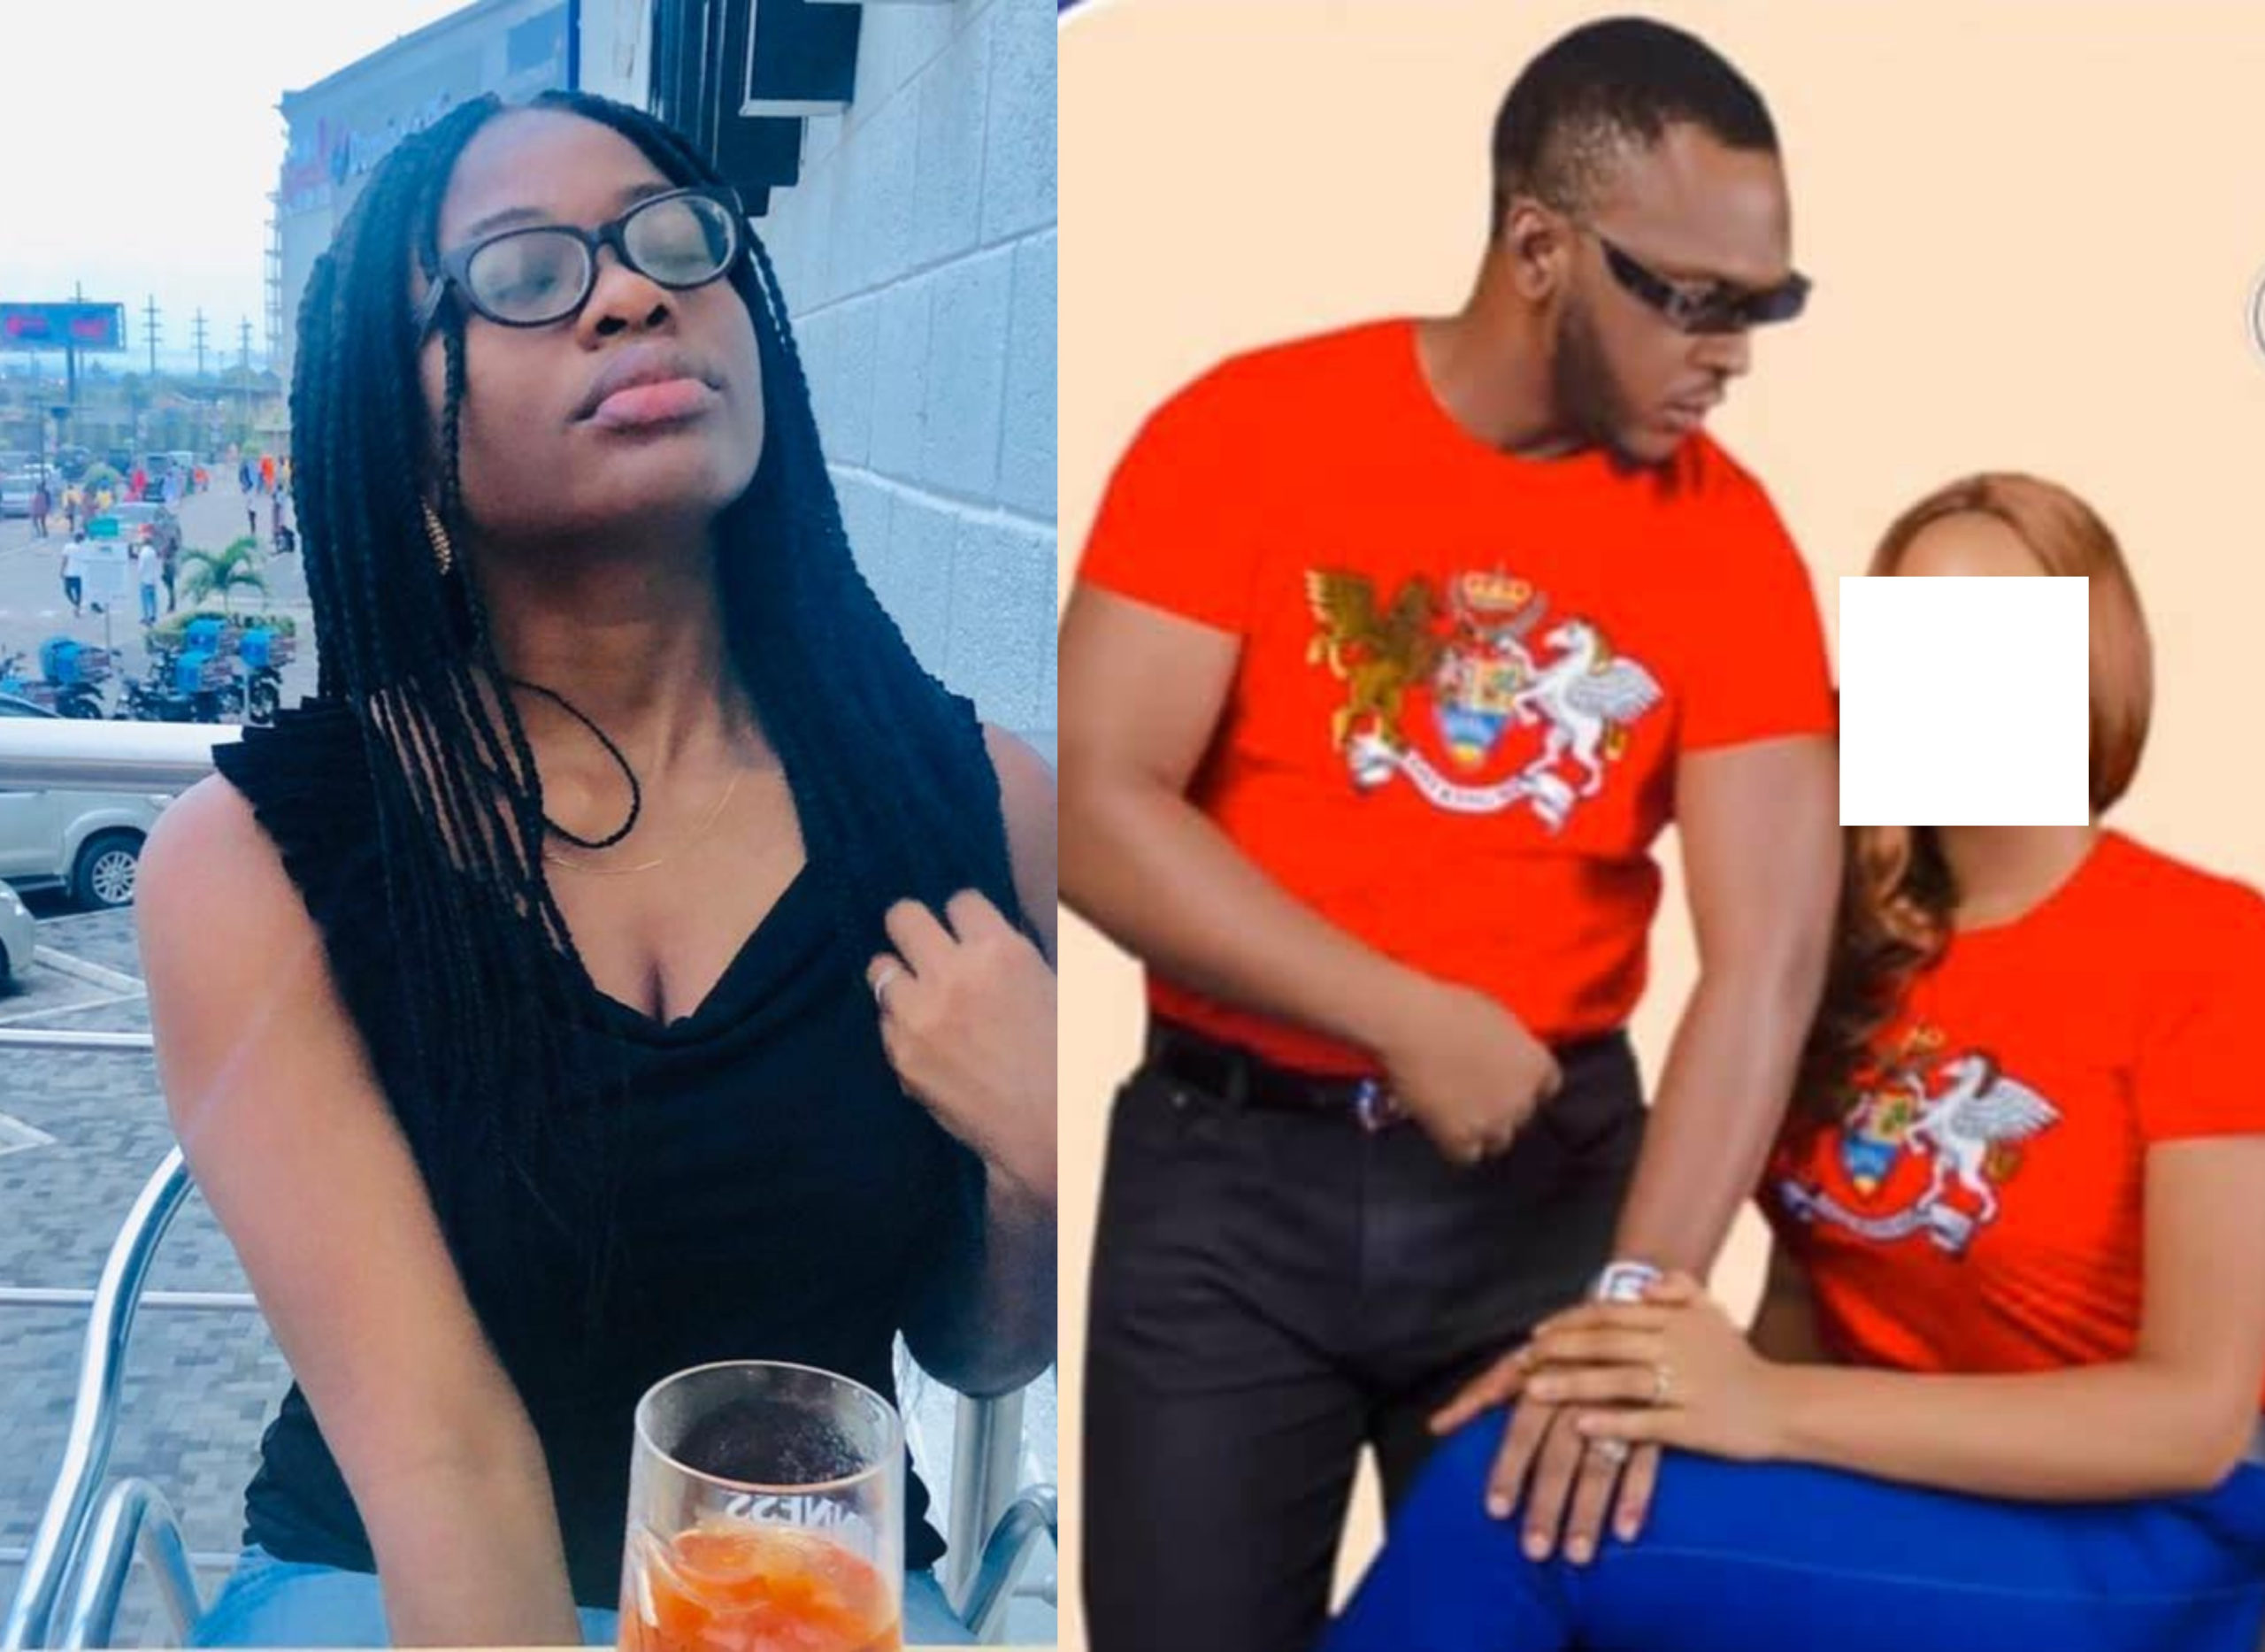 NIGERIAN LADY CALLS OUT ABOUT-TO-WED SCHOOLMATE WHO ALLEGEDLY RAPED HER